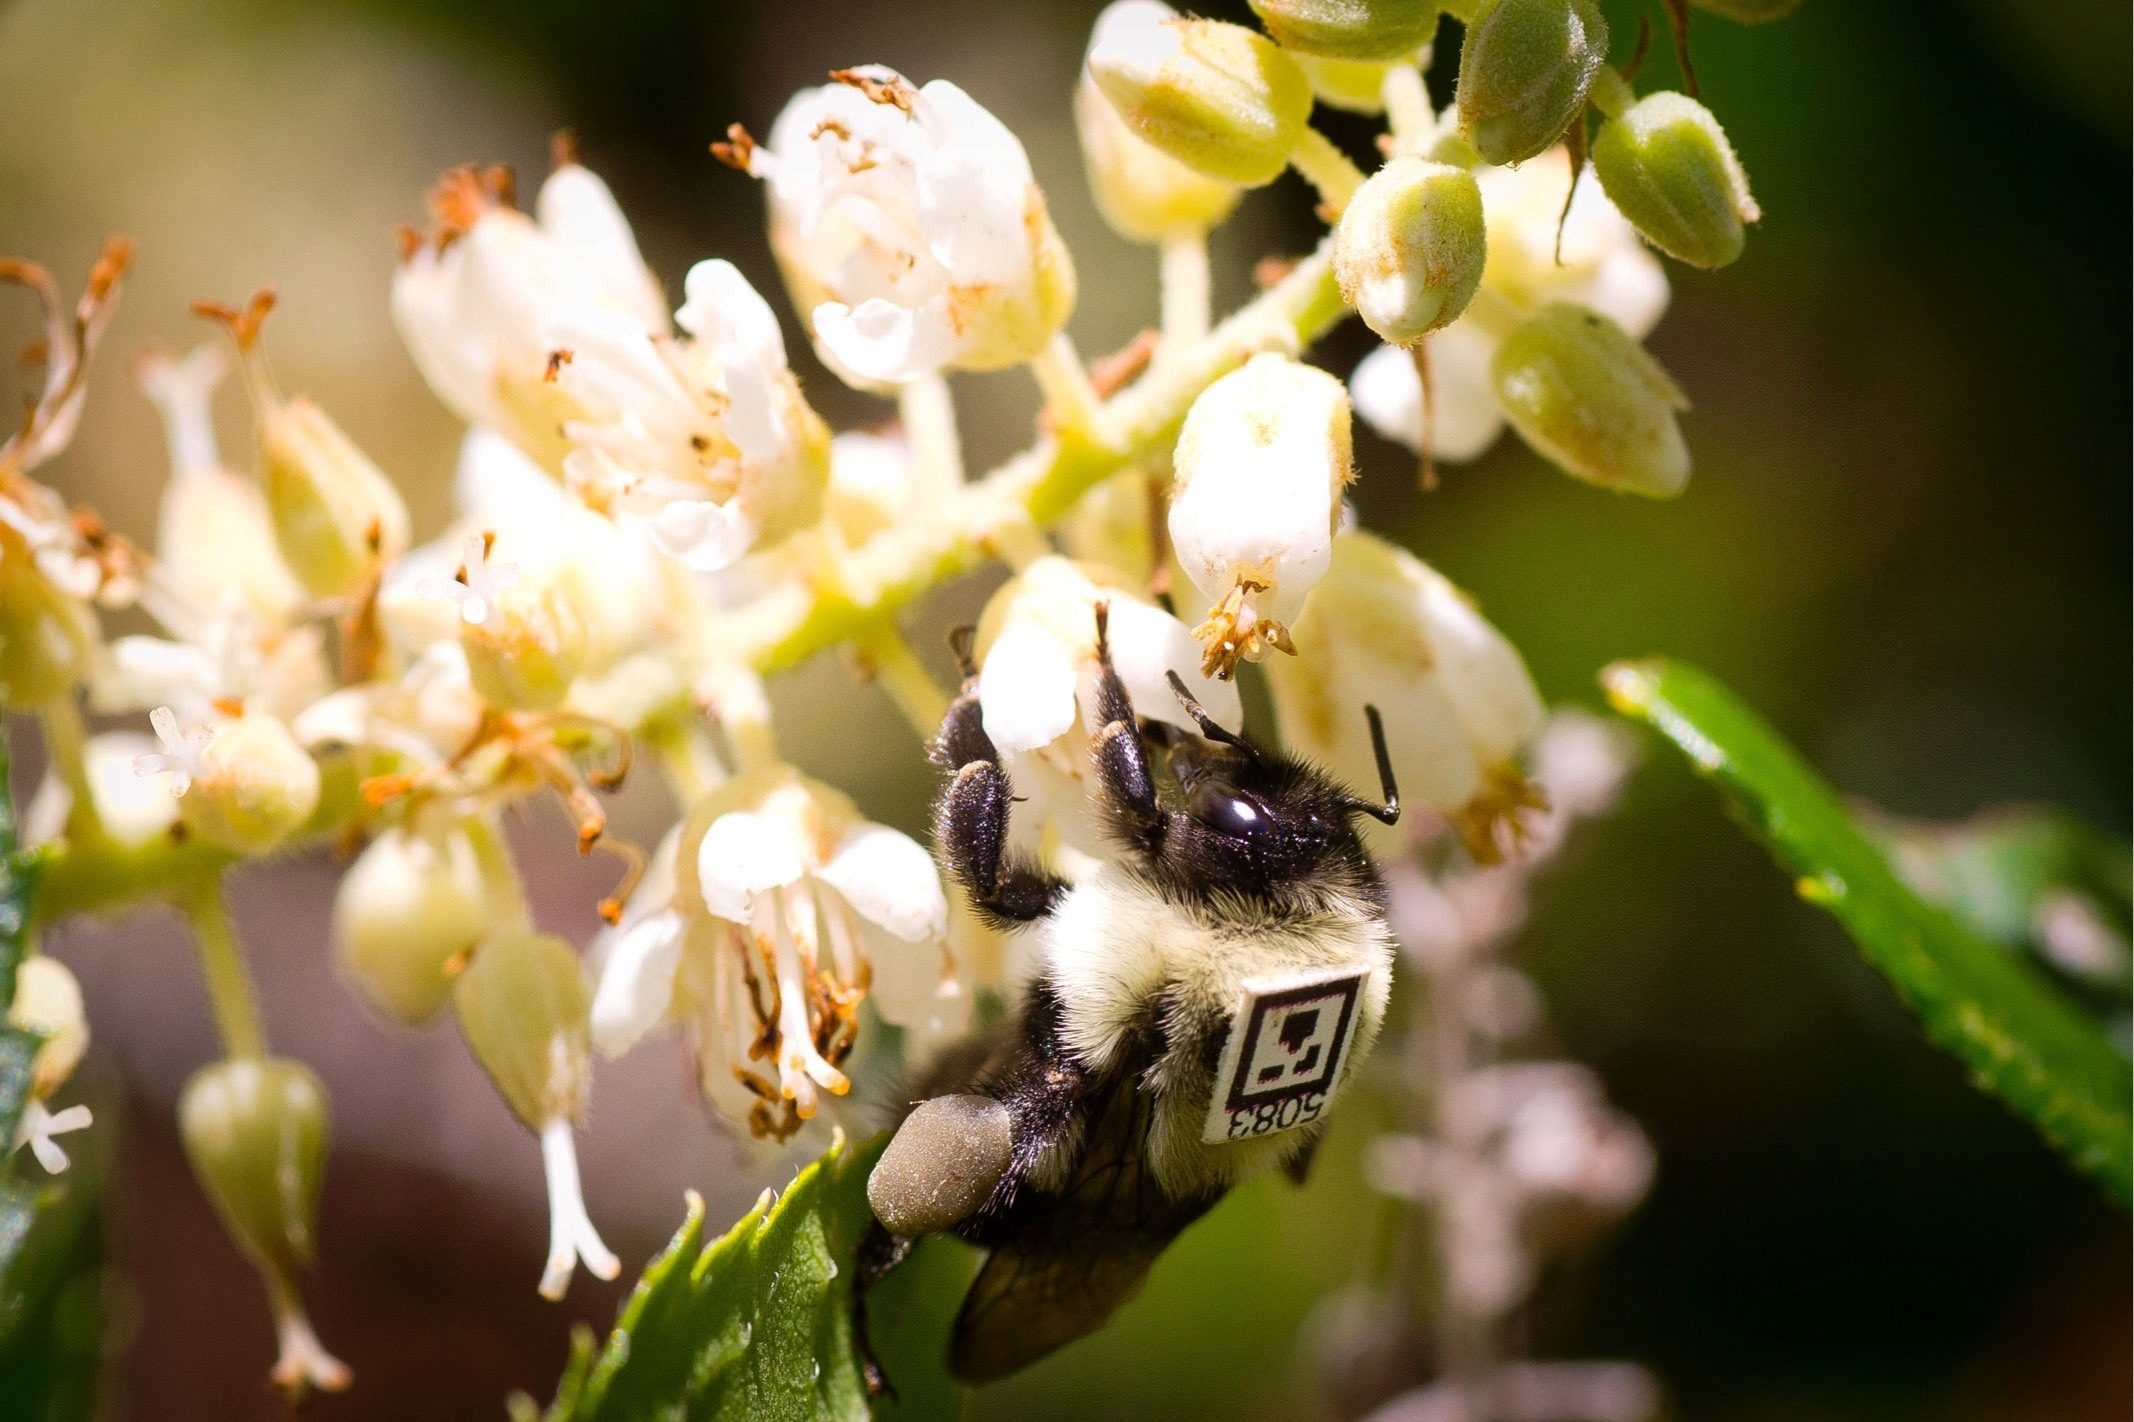 A bumblebee (Bombus impatiens) worker outfitted with a unique tag (BEEtag), foraging outdoors.